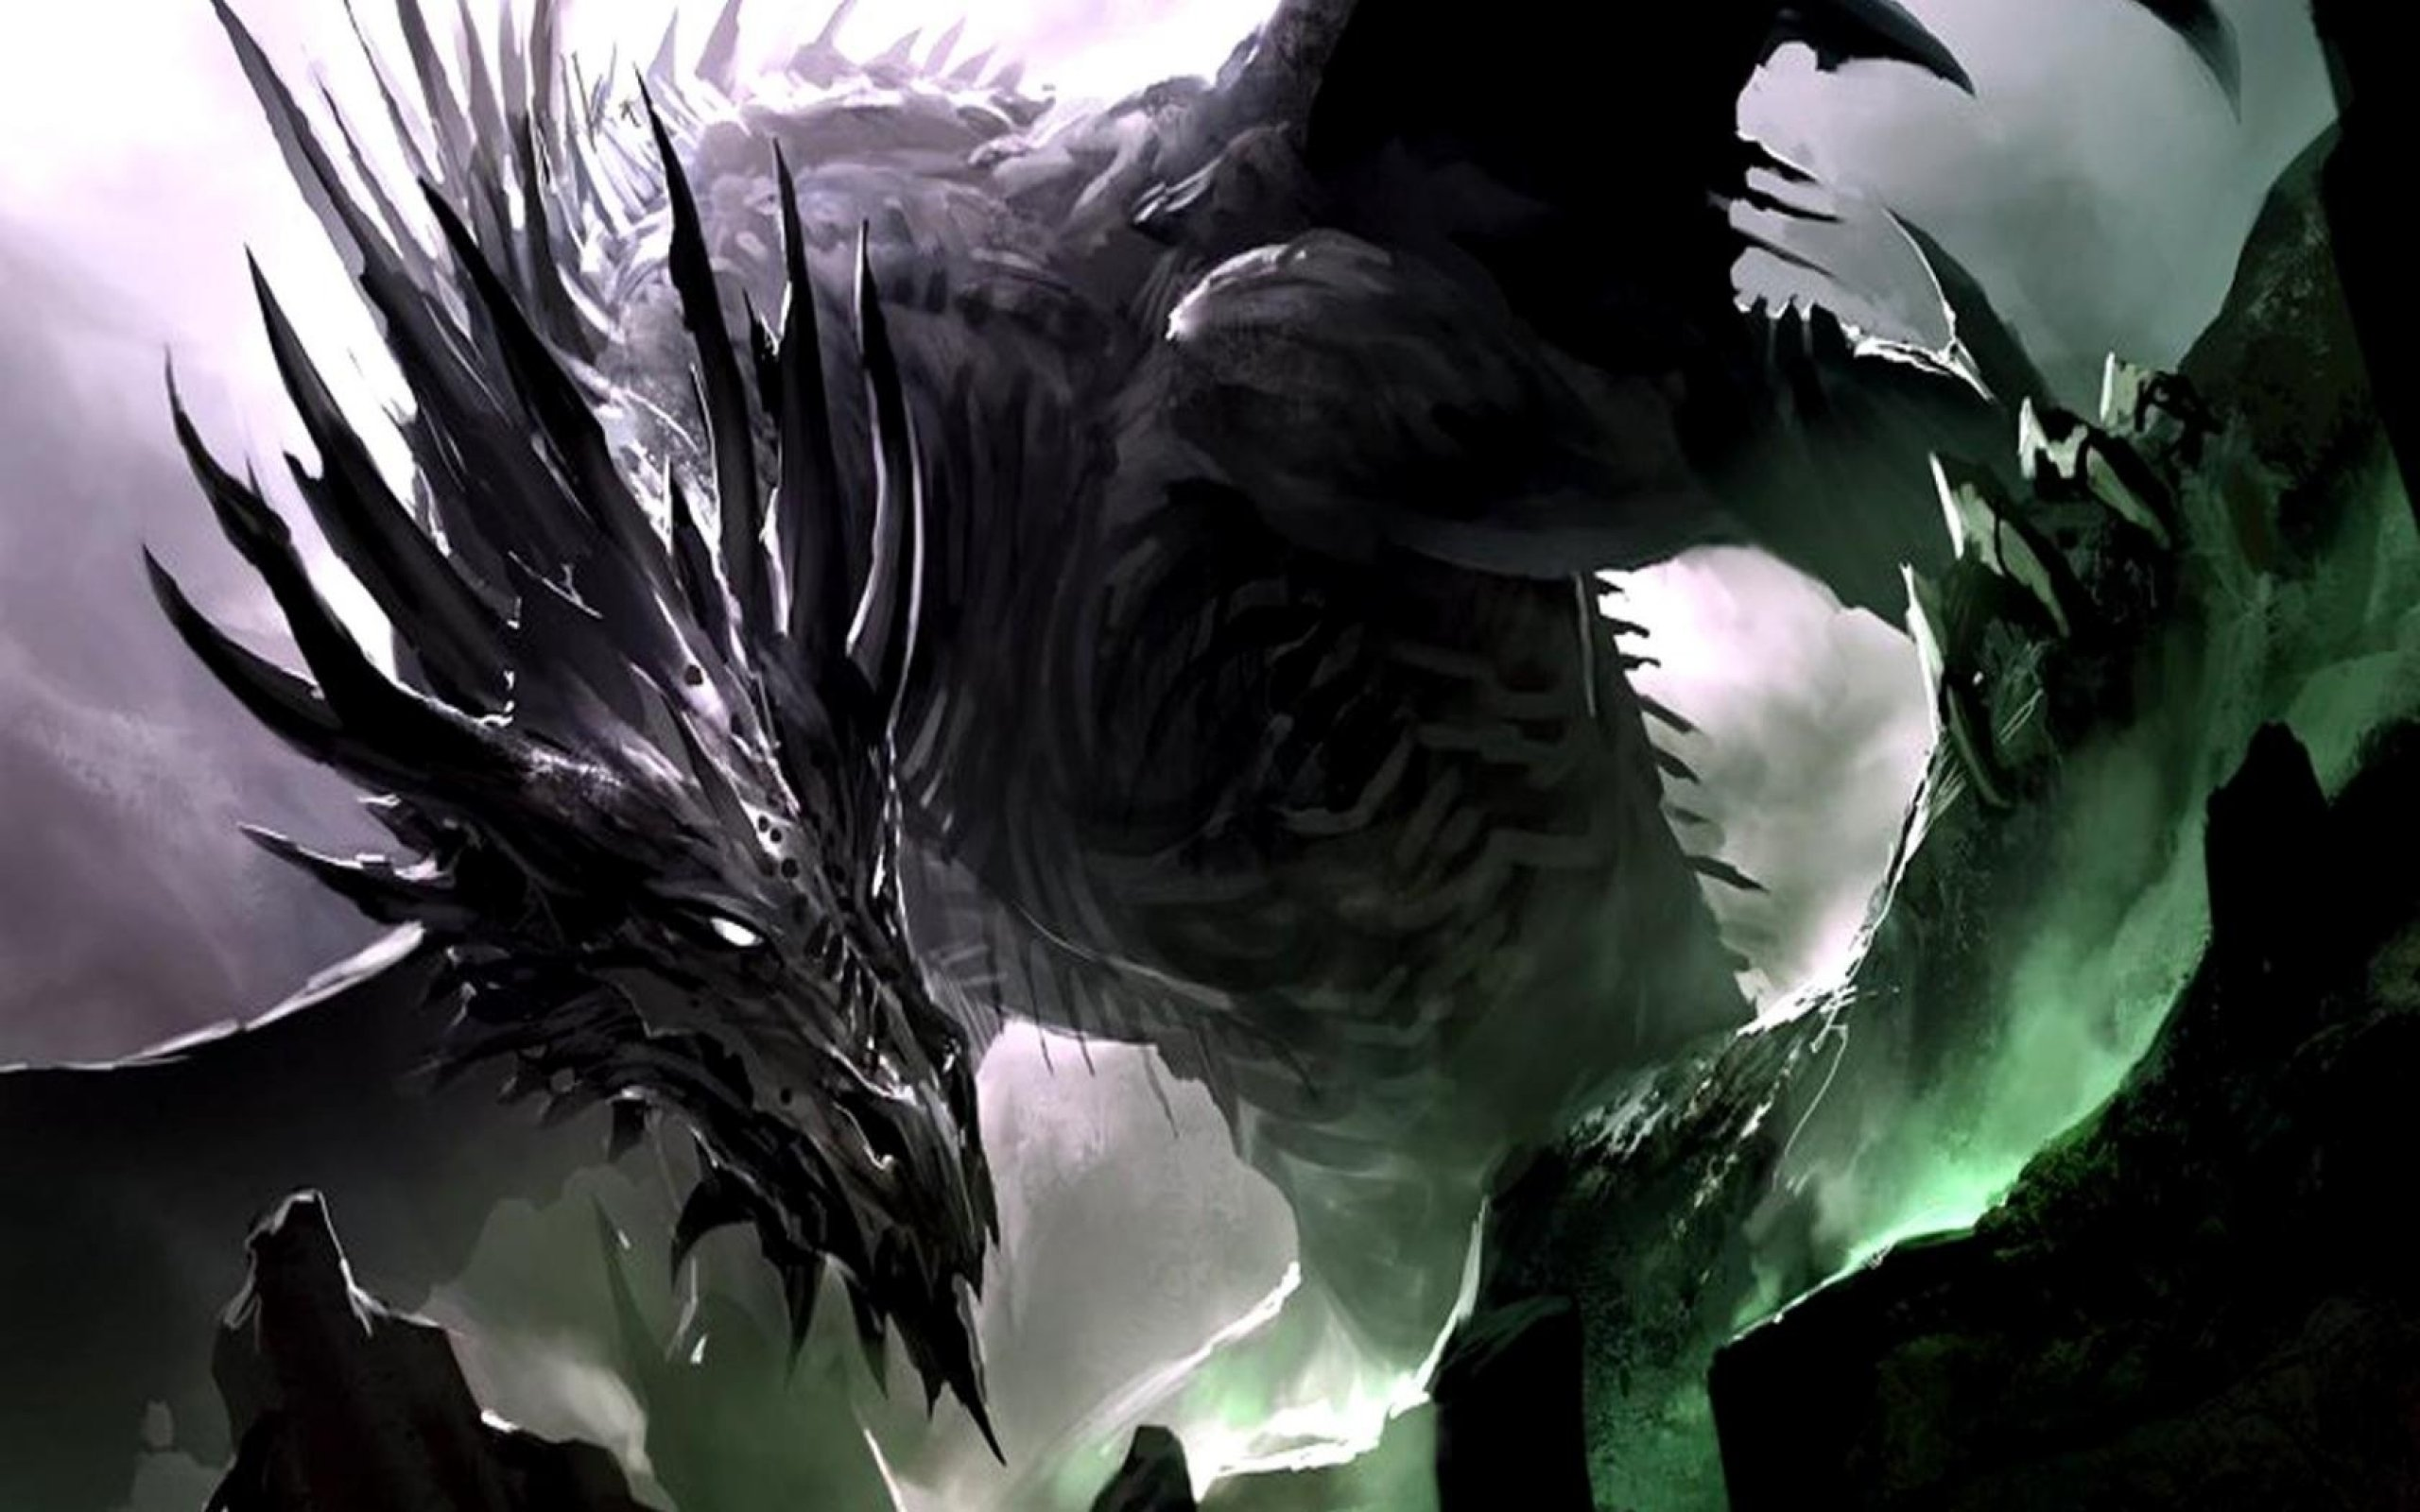 Black Dragon Cool Backgrounds Wallpapers 10132   Amazing Wallpaperz 2560x1600